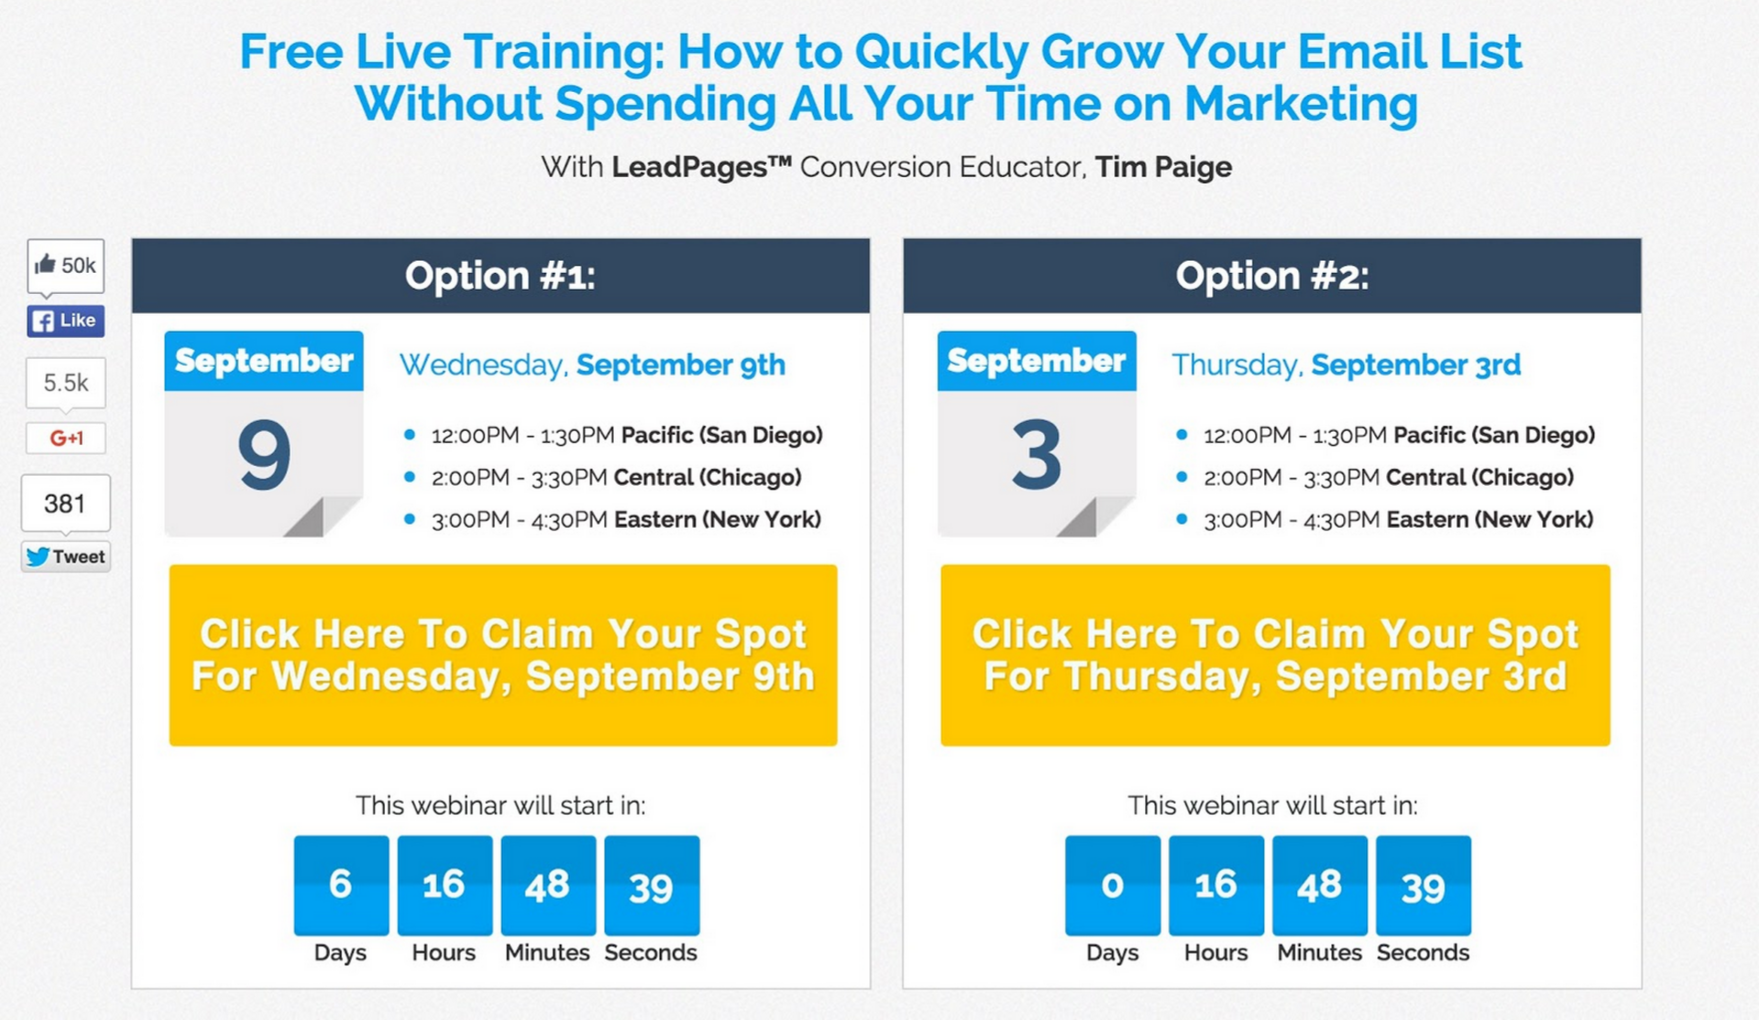 Leadpages uses its own webinar features to power content marketing initiatives